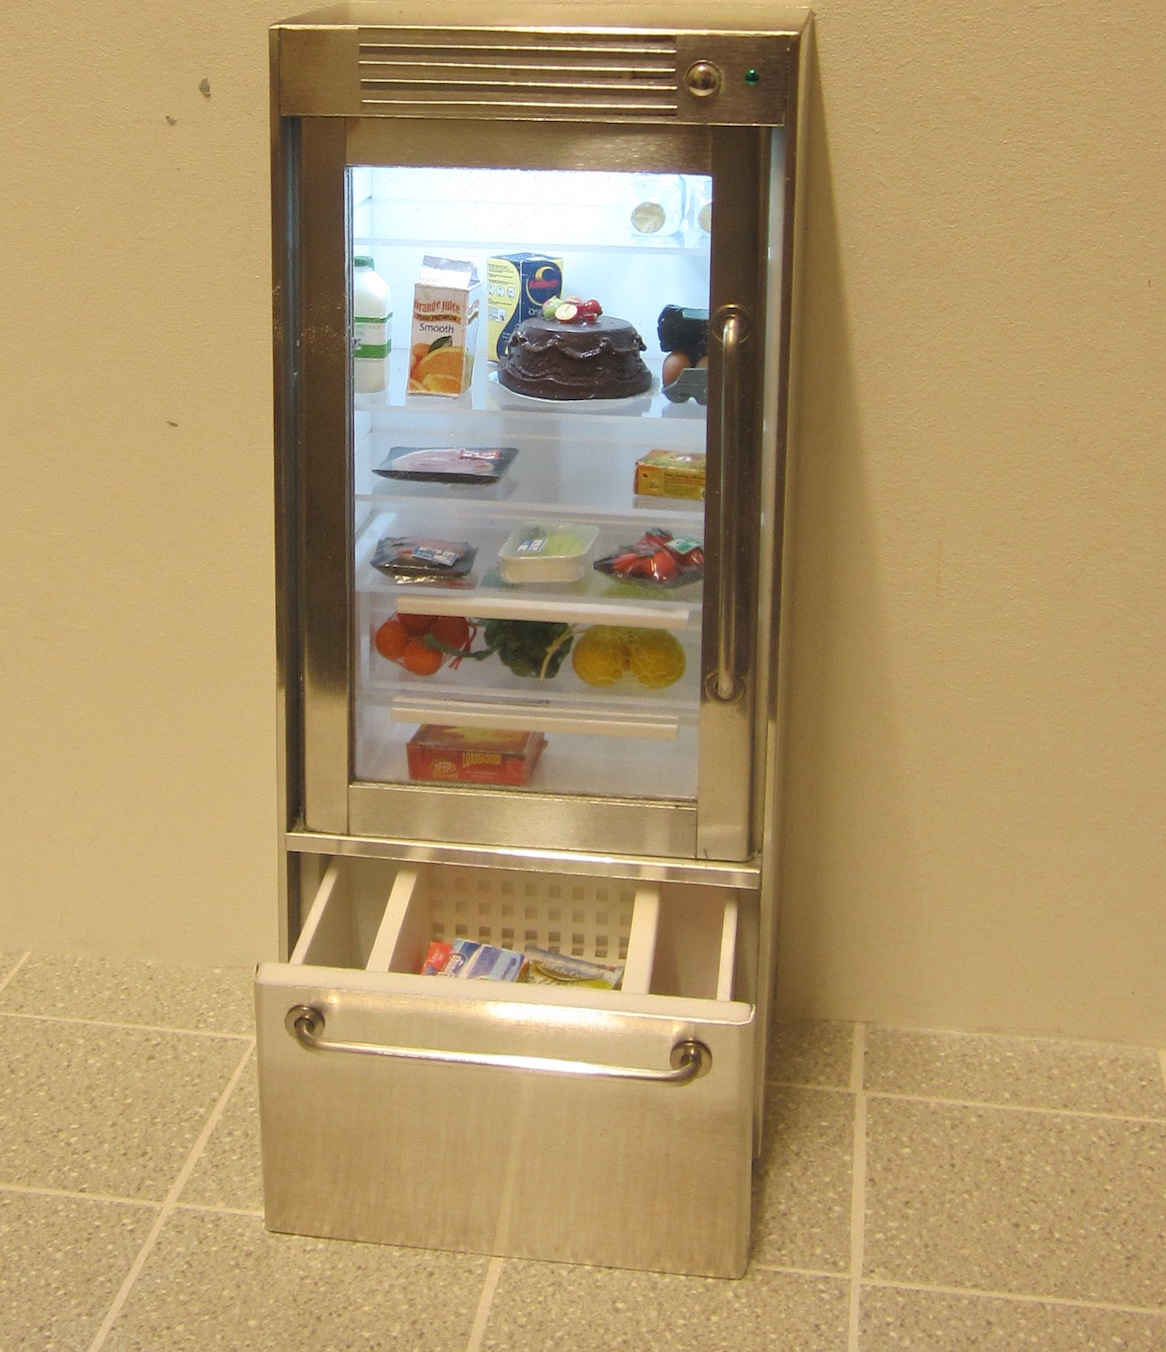 ELF glass-door refrigerator + opening drawer